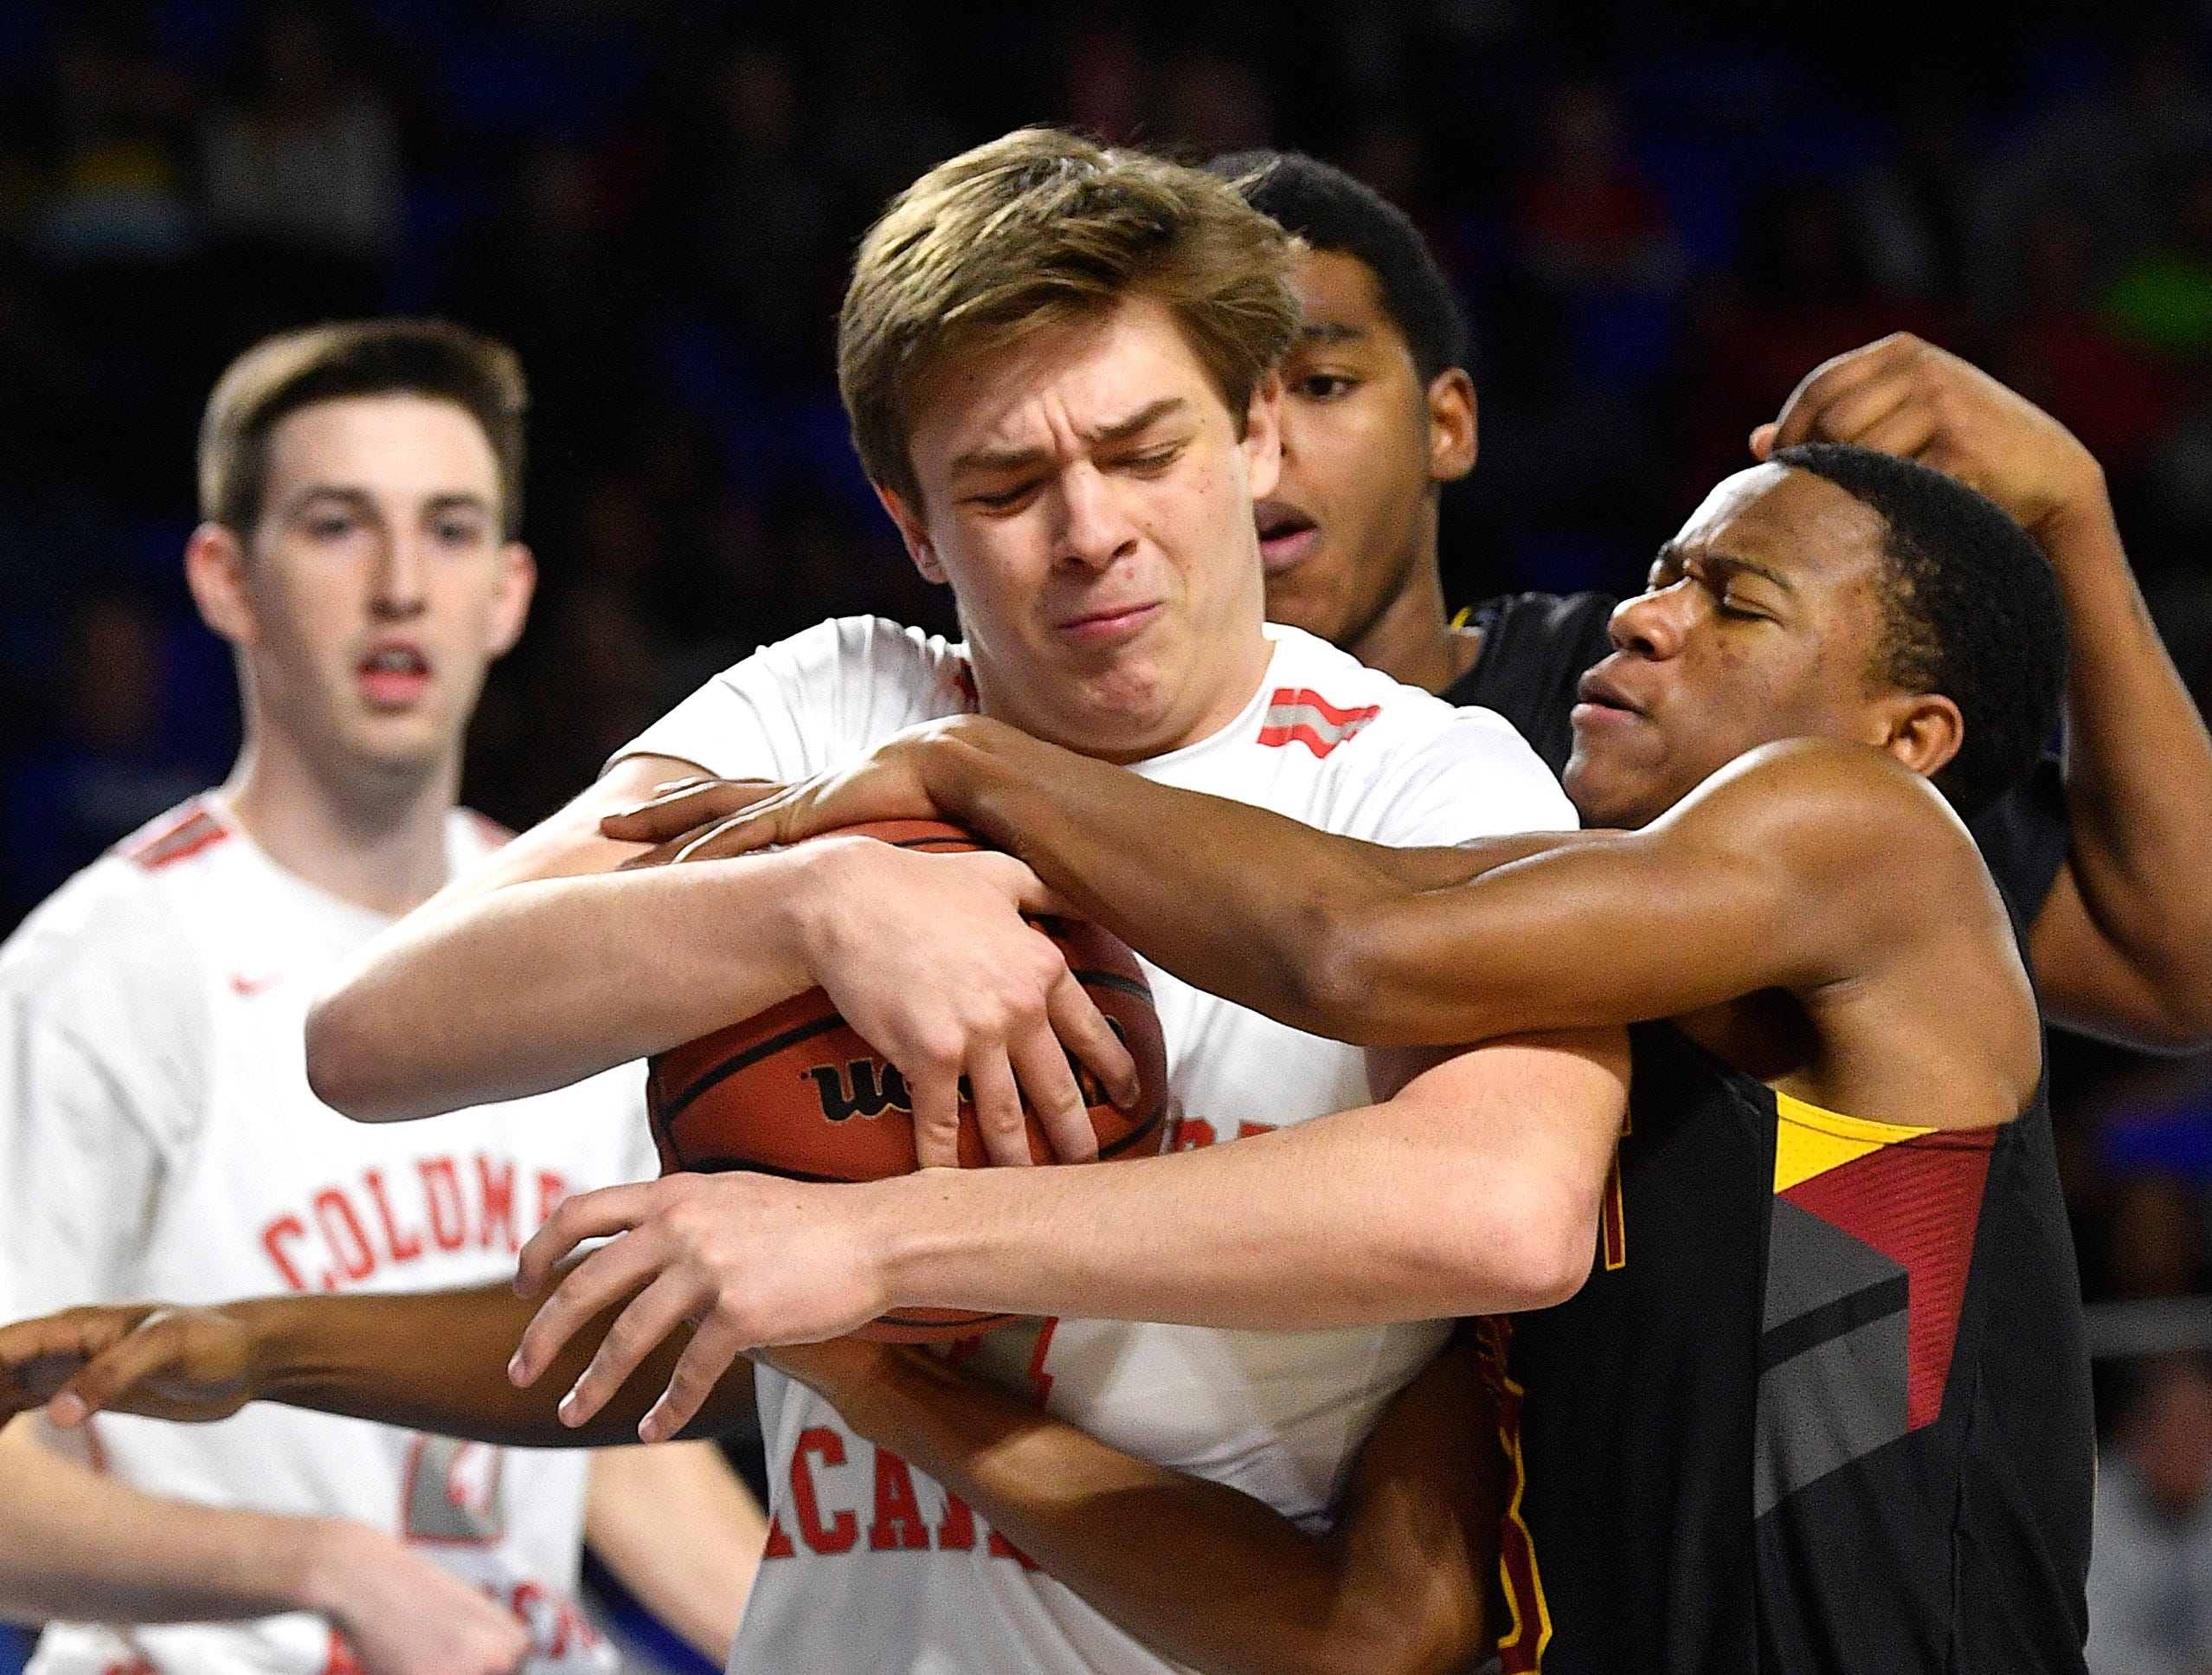 Humboldt's Trent Green (3) and Columbia Academy Gary Smith, Jr. (23) struggle for the ball as Columbia Academy plays Humboldt for the TSSAA Class A Championship  Saturday, March 16, 2019, in Murfreesboro, Tenn.